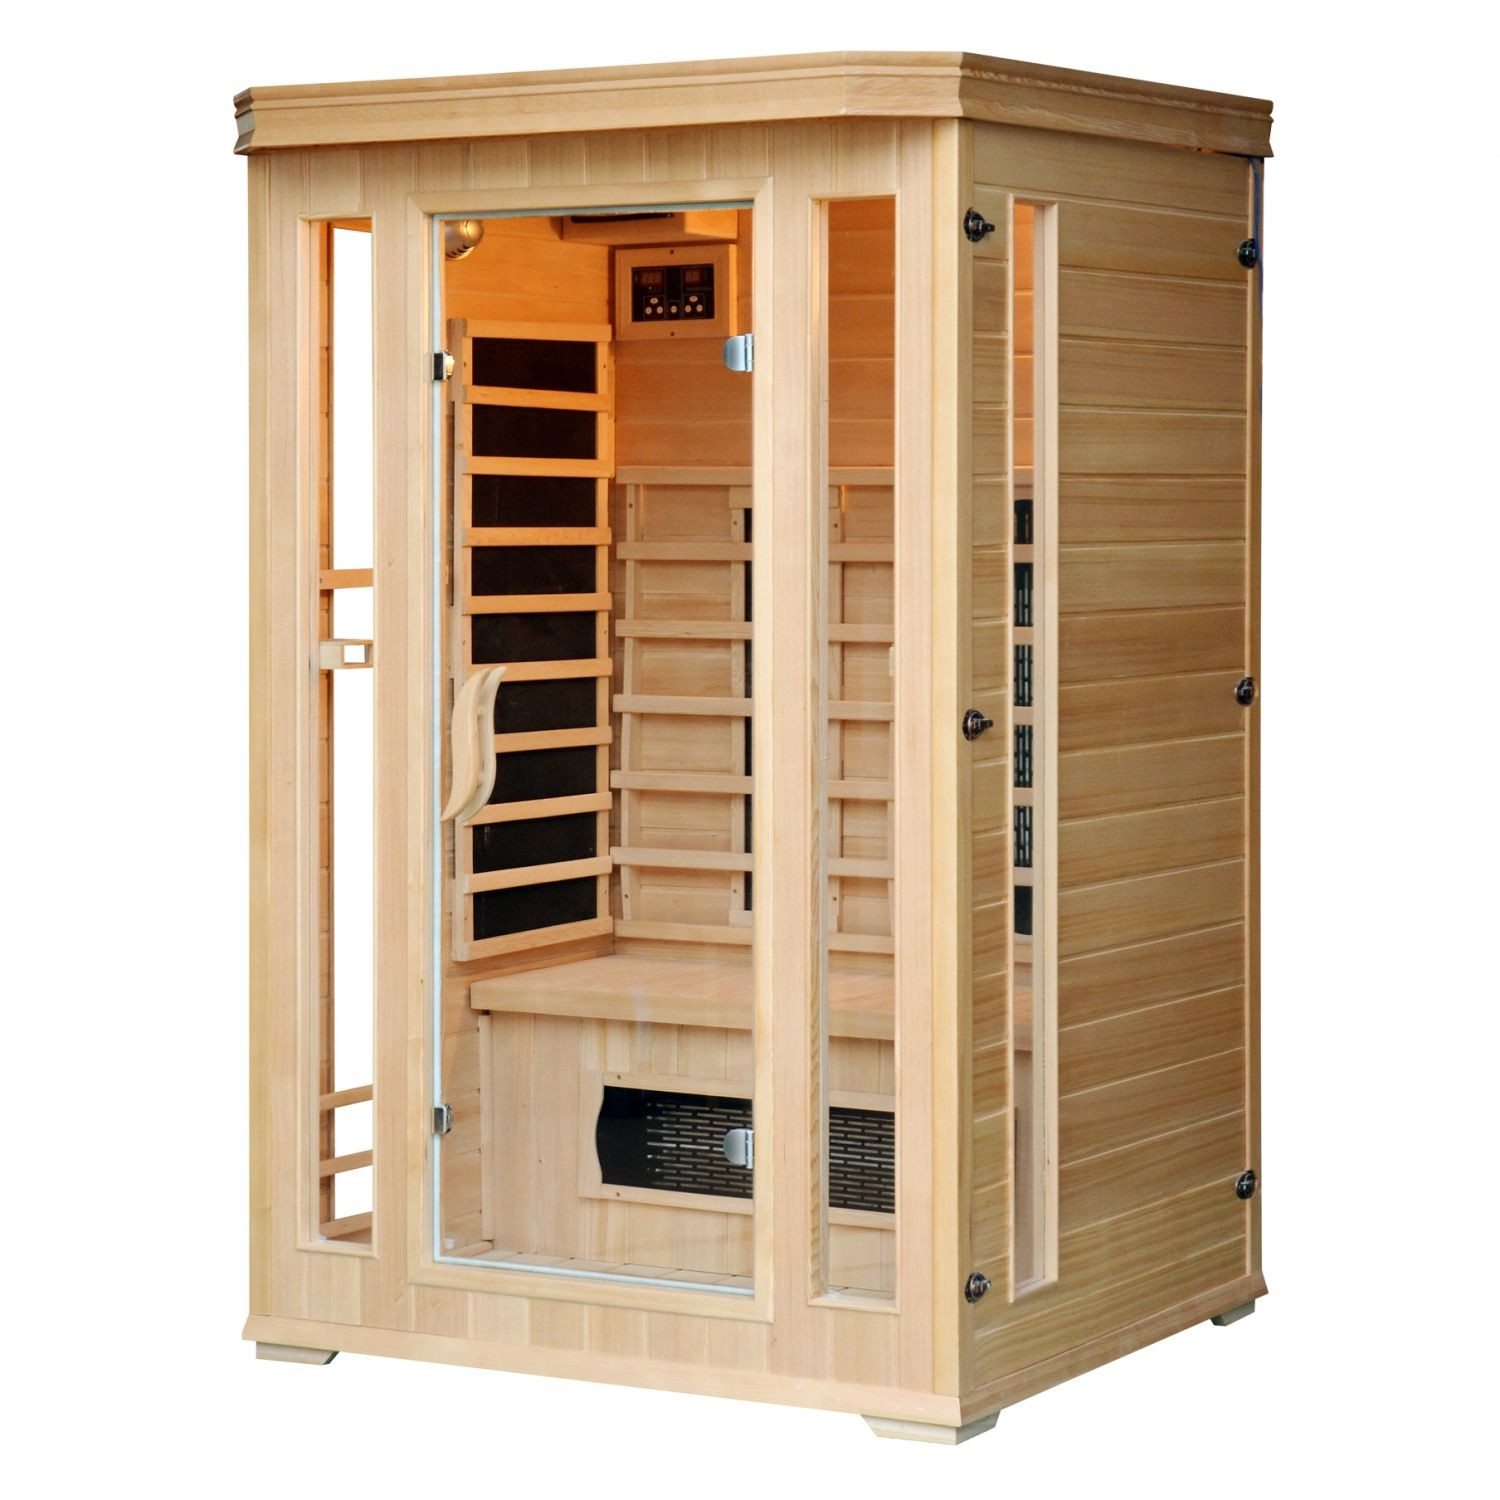 horten sauna 2 places technologie infrarouge saunas. Black Bedroom Furniture Sets. Home Design Ideas